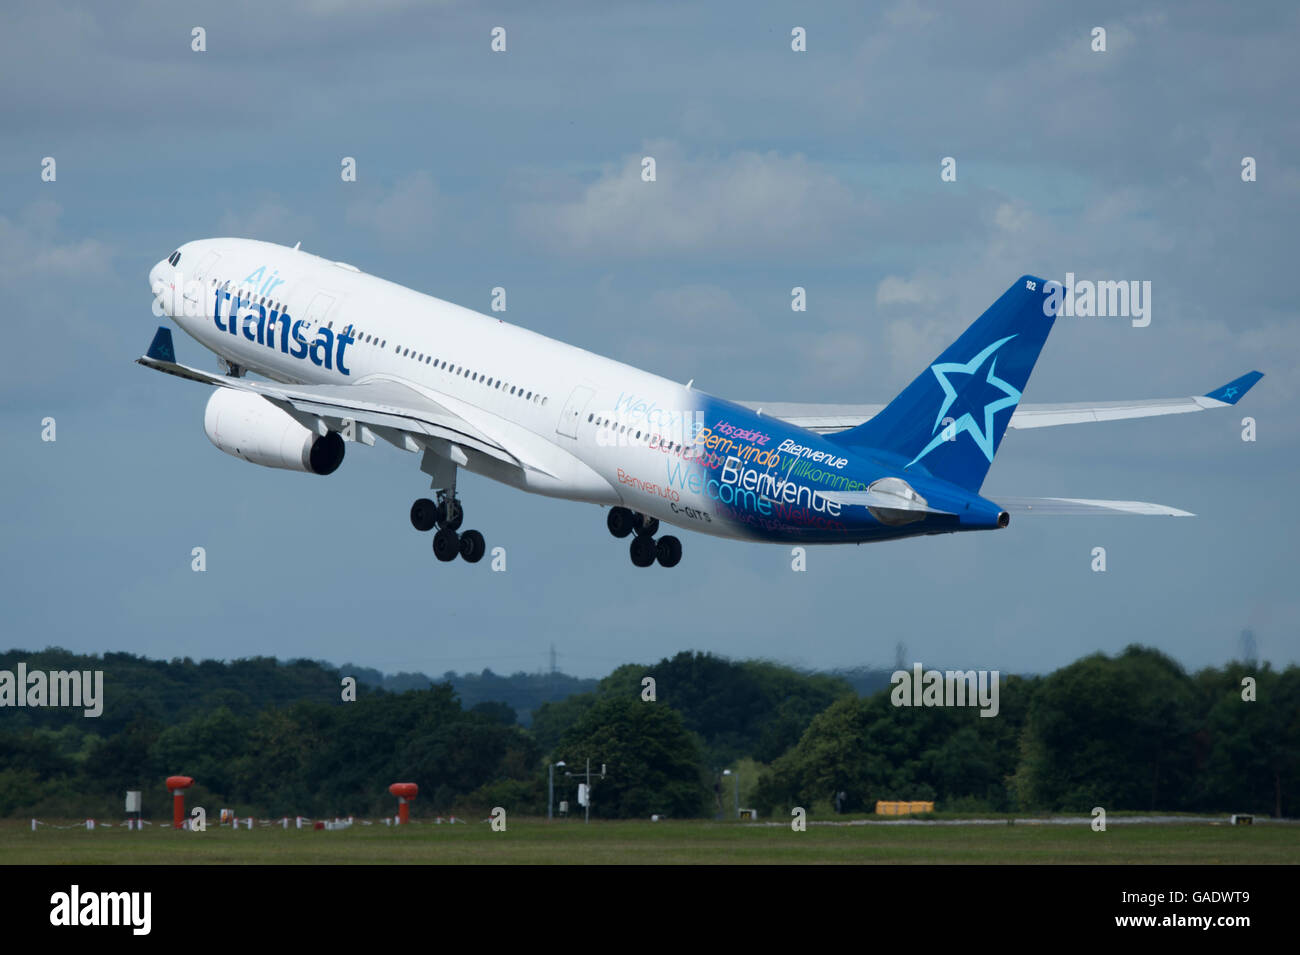 An Air Transat Airbus A330 takes off from Manchester International Airport (Editorial use only) - Stock Image